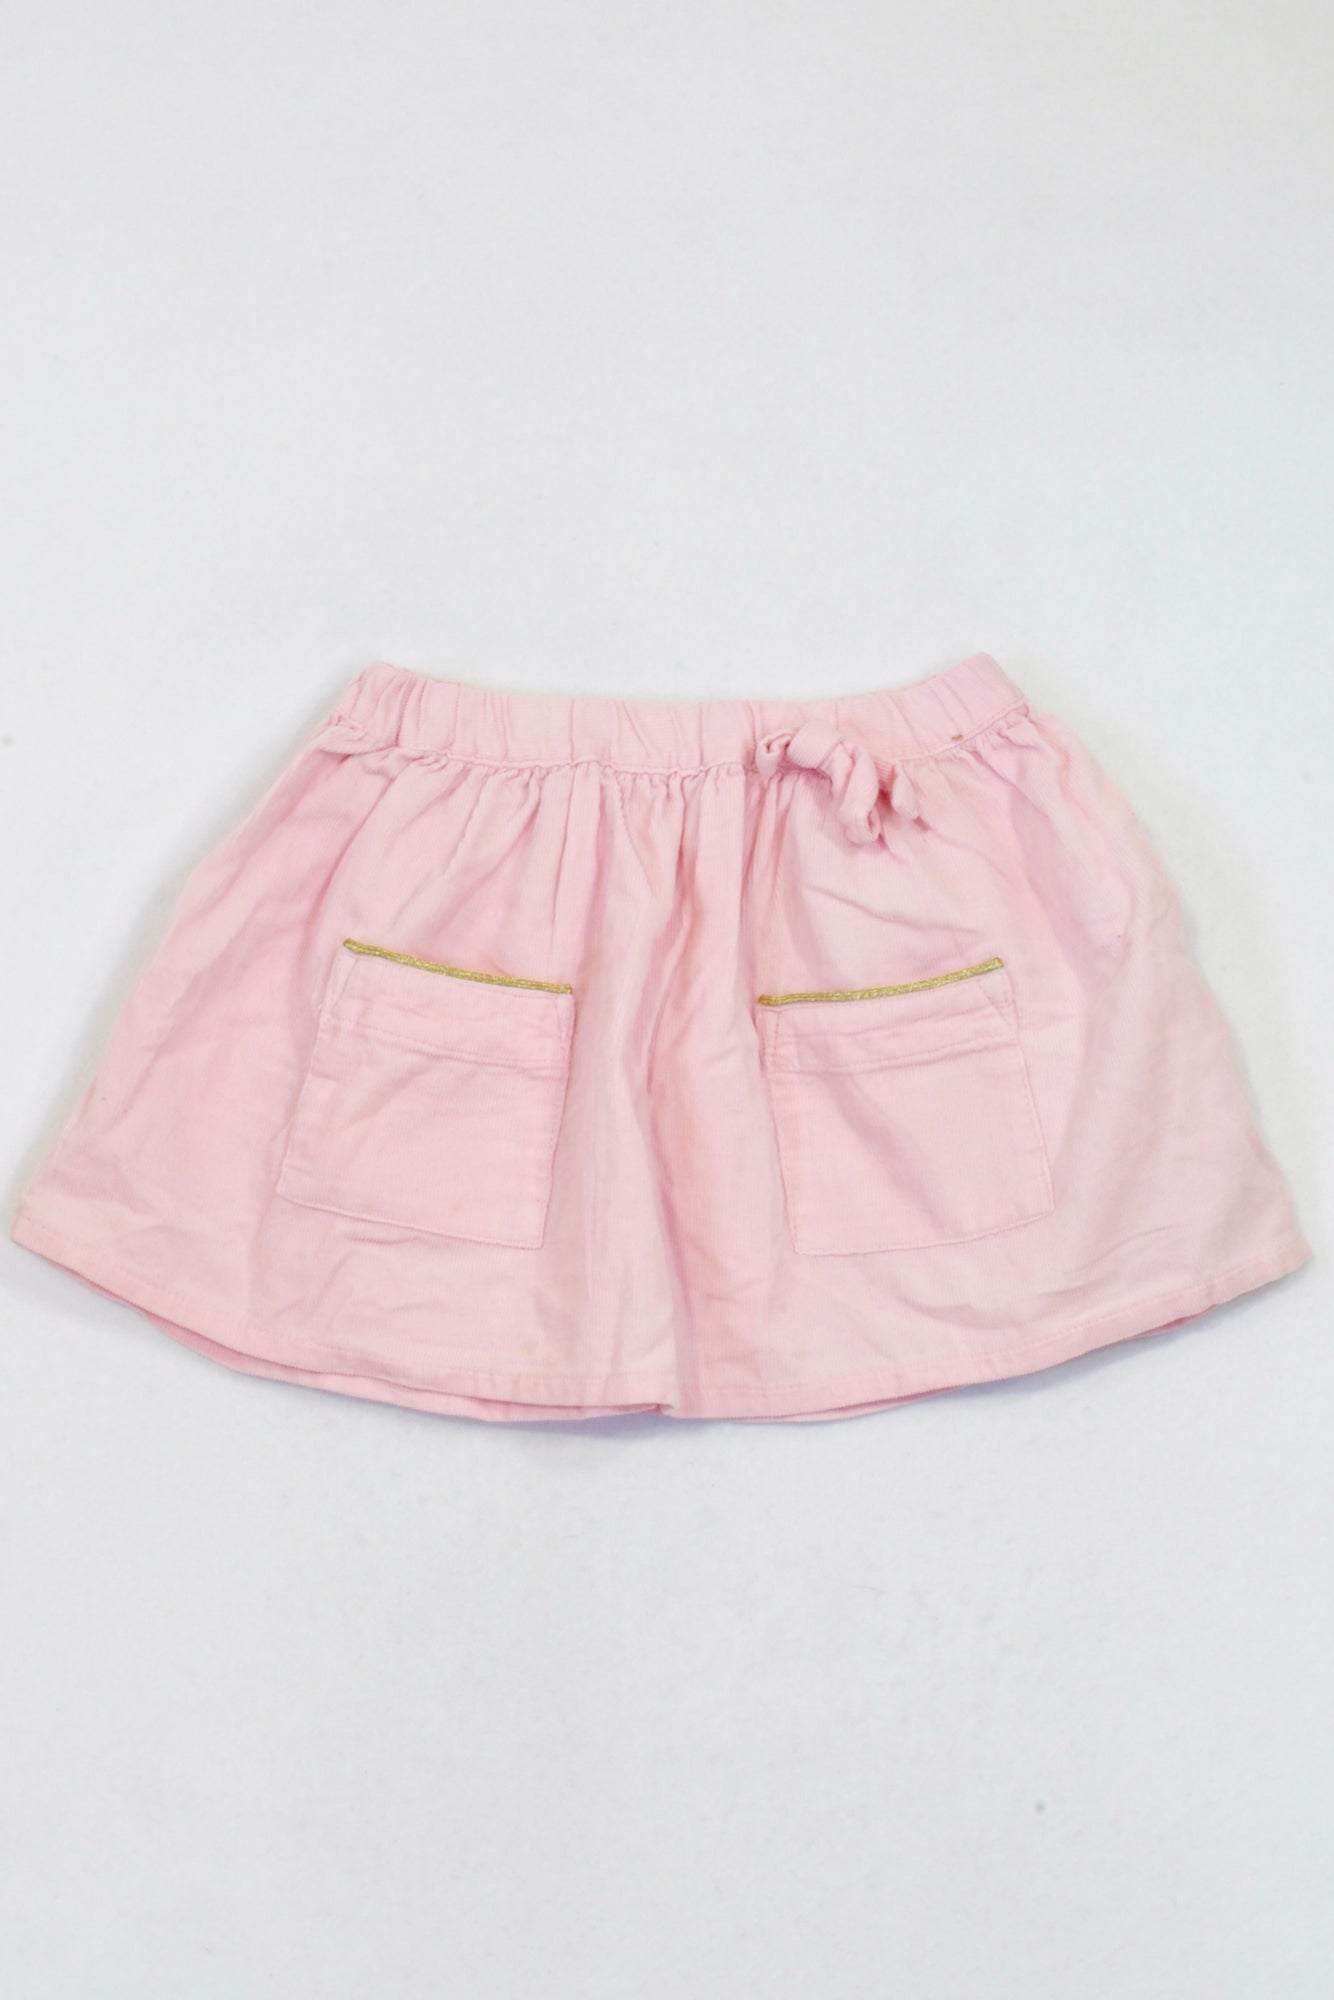 f650c26e7a Cotton On Pink Corduroy Drawstring Skirt Girls 1-2 years – Once More